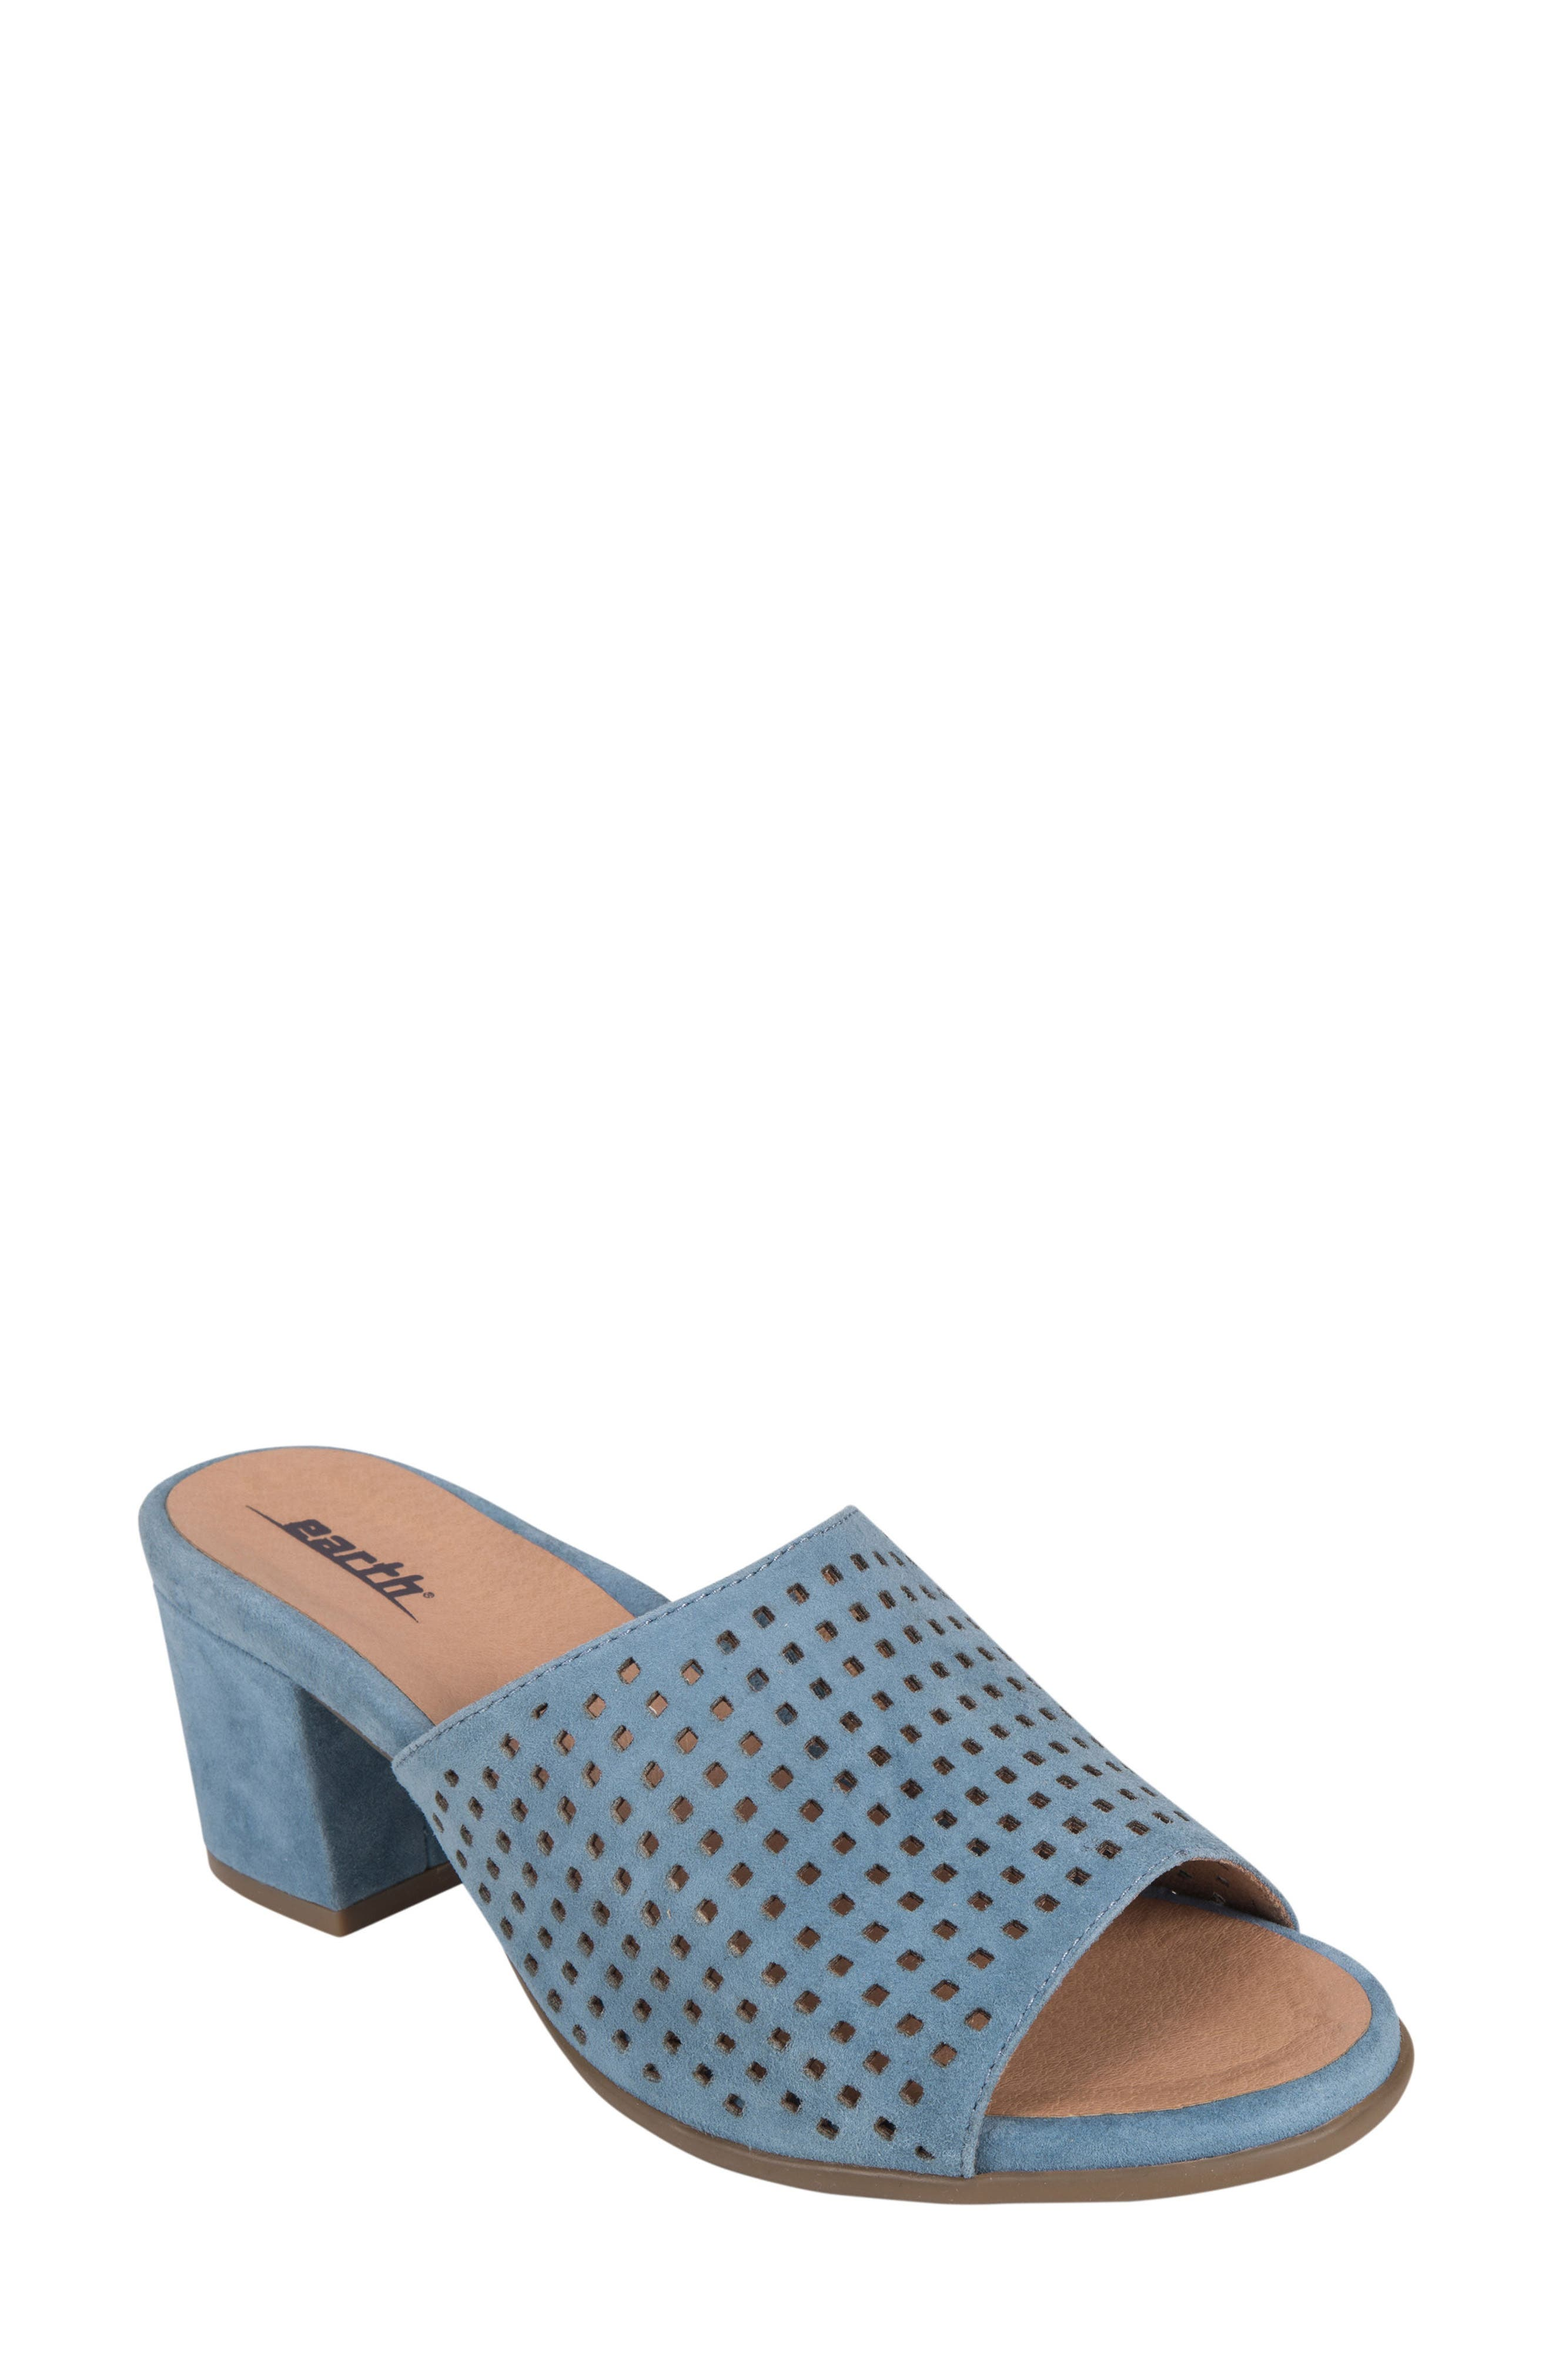 Ibiza Perforated Sandal,                             Main thumbnail 1, color,                             SKY BLUE SUEDE